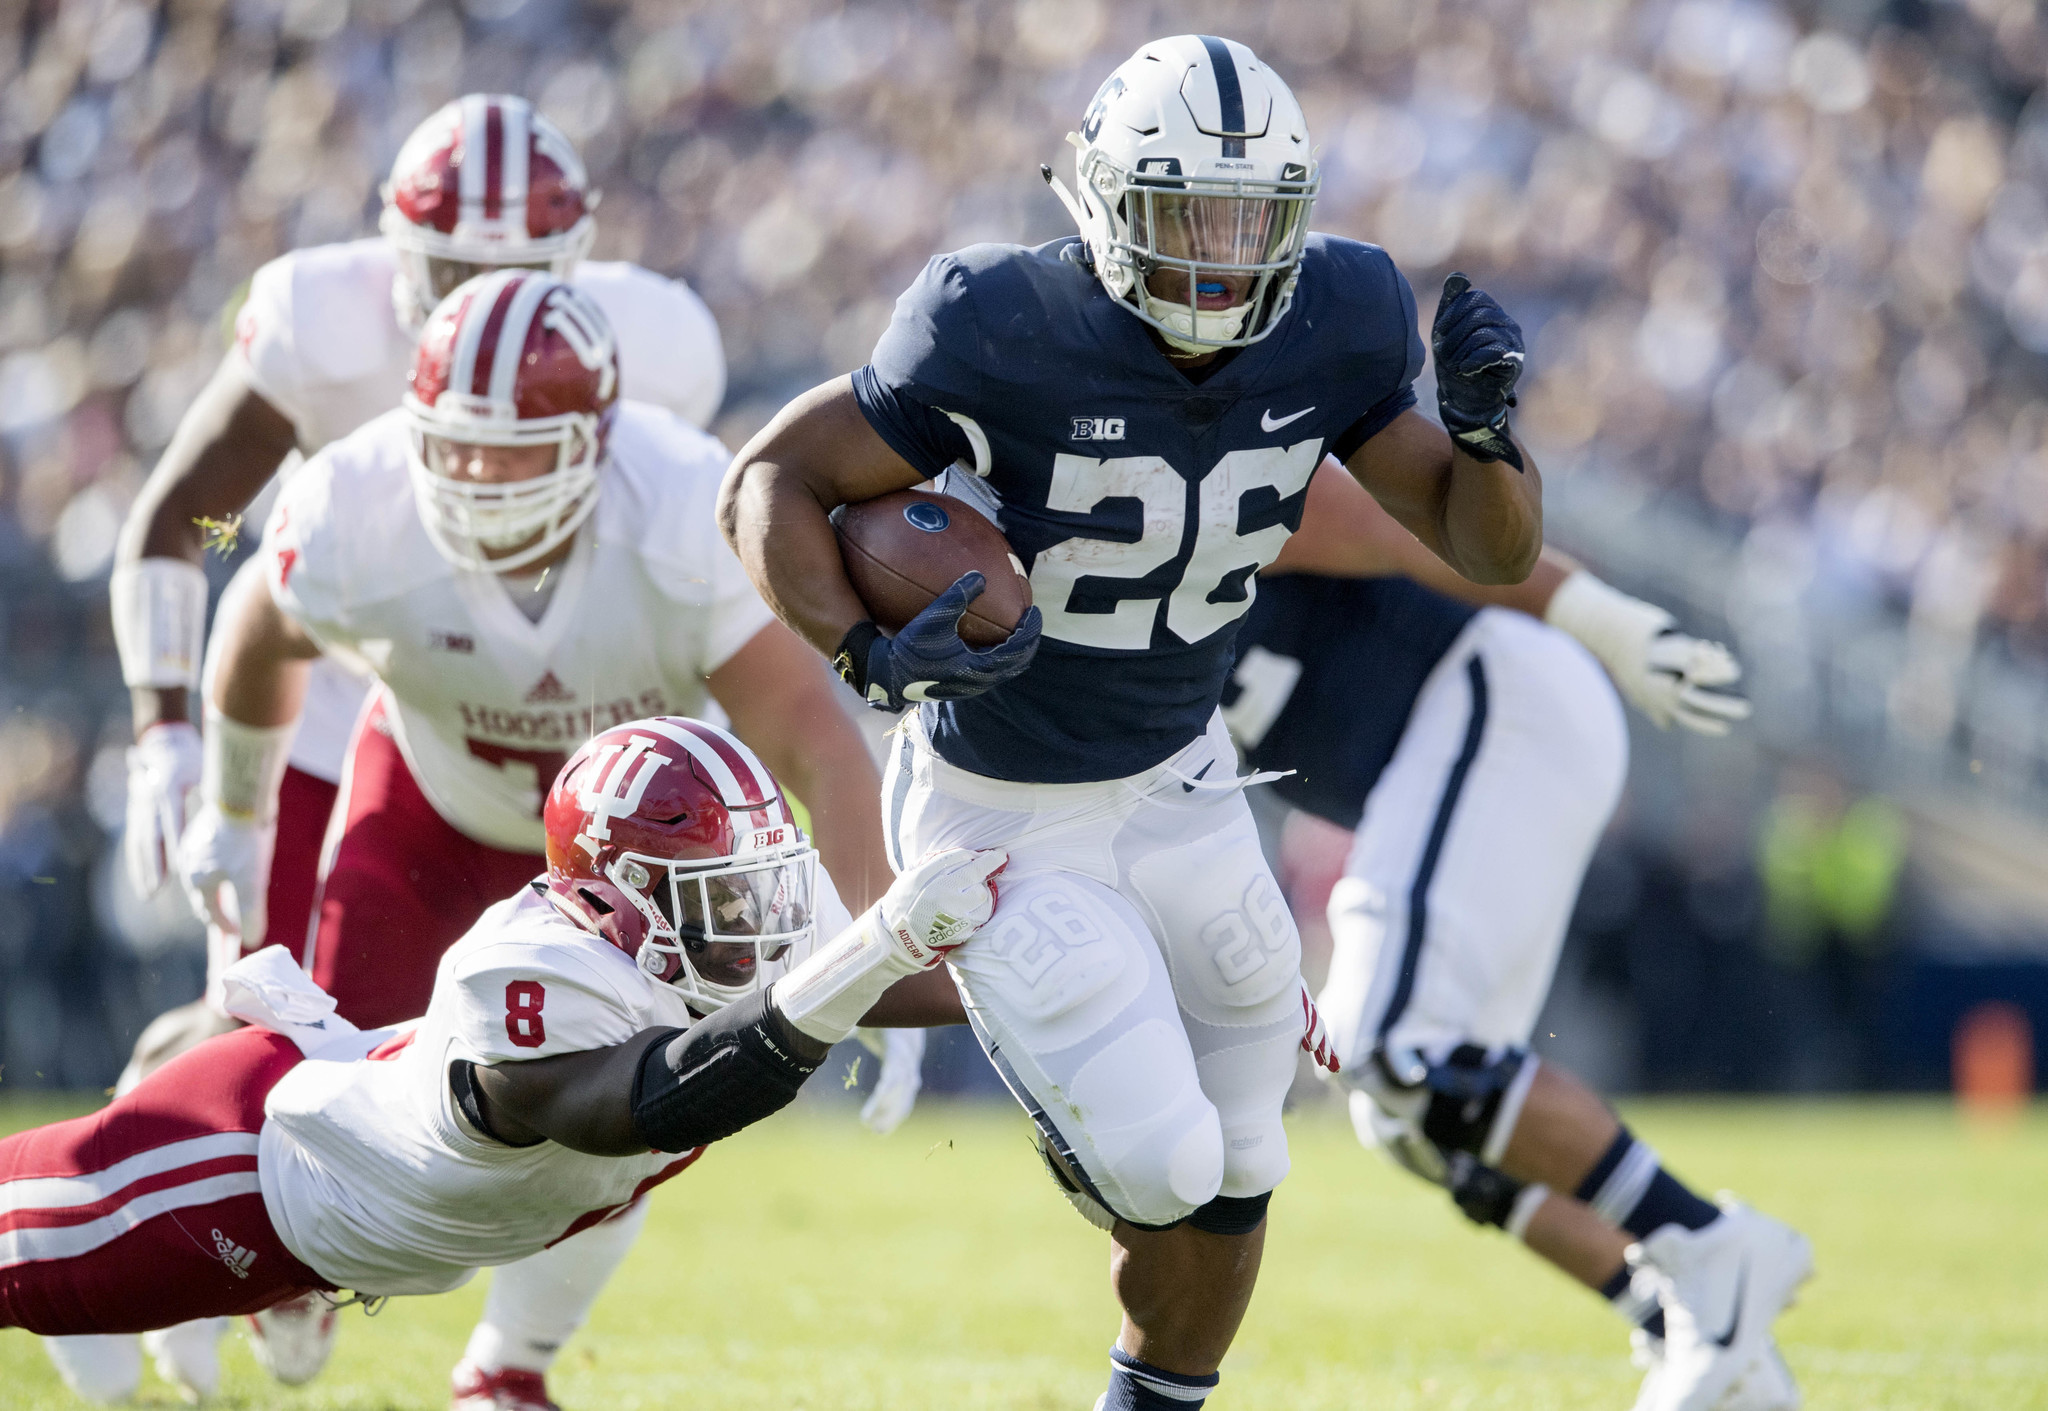 penn state 39 s saquon barkley 39 maybe the best 39 nu 39 s pat. Black Bedroom Furniture Sets. Home Design Ideas